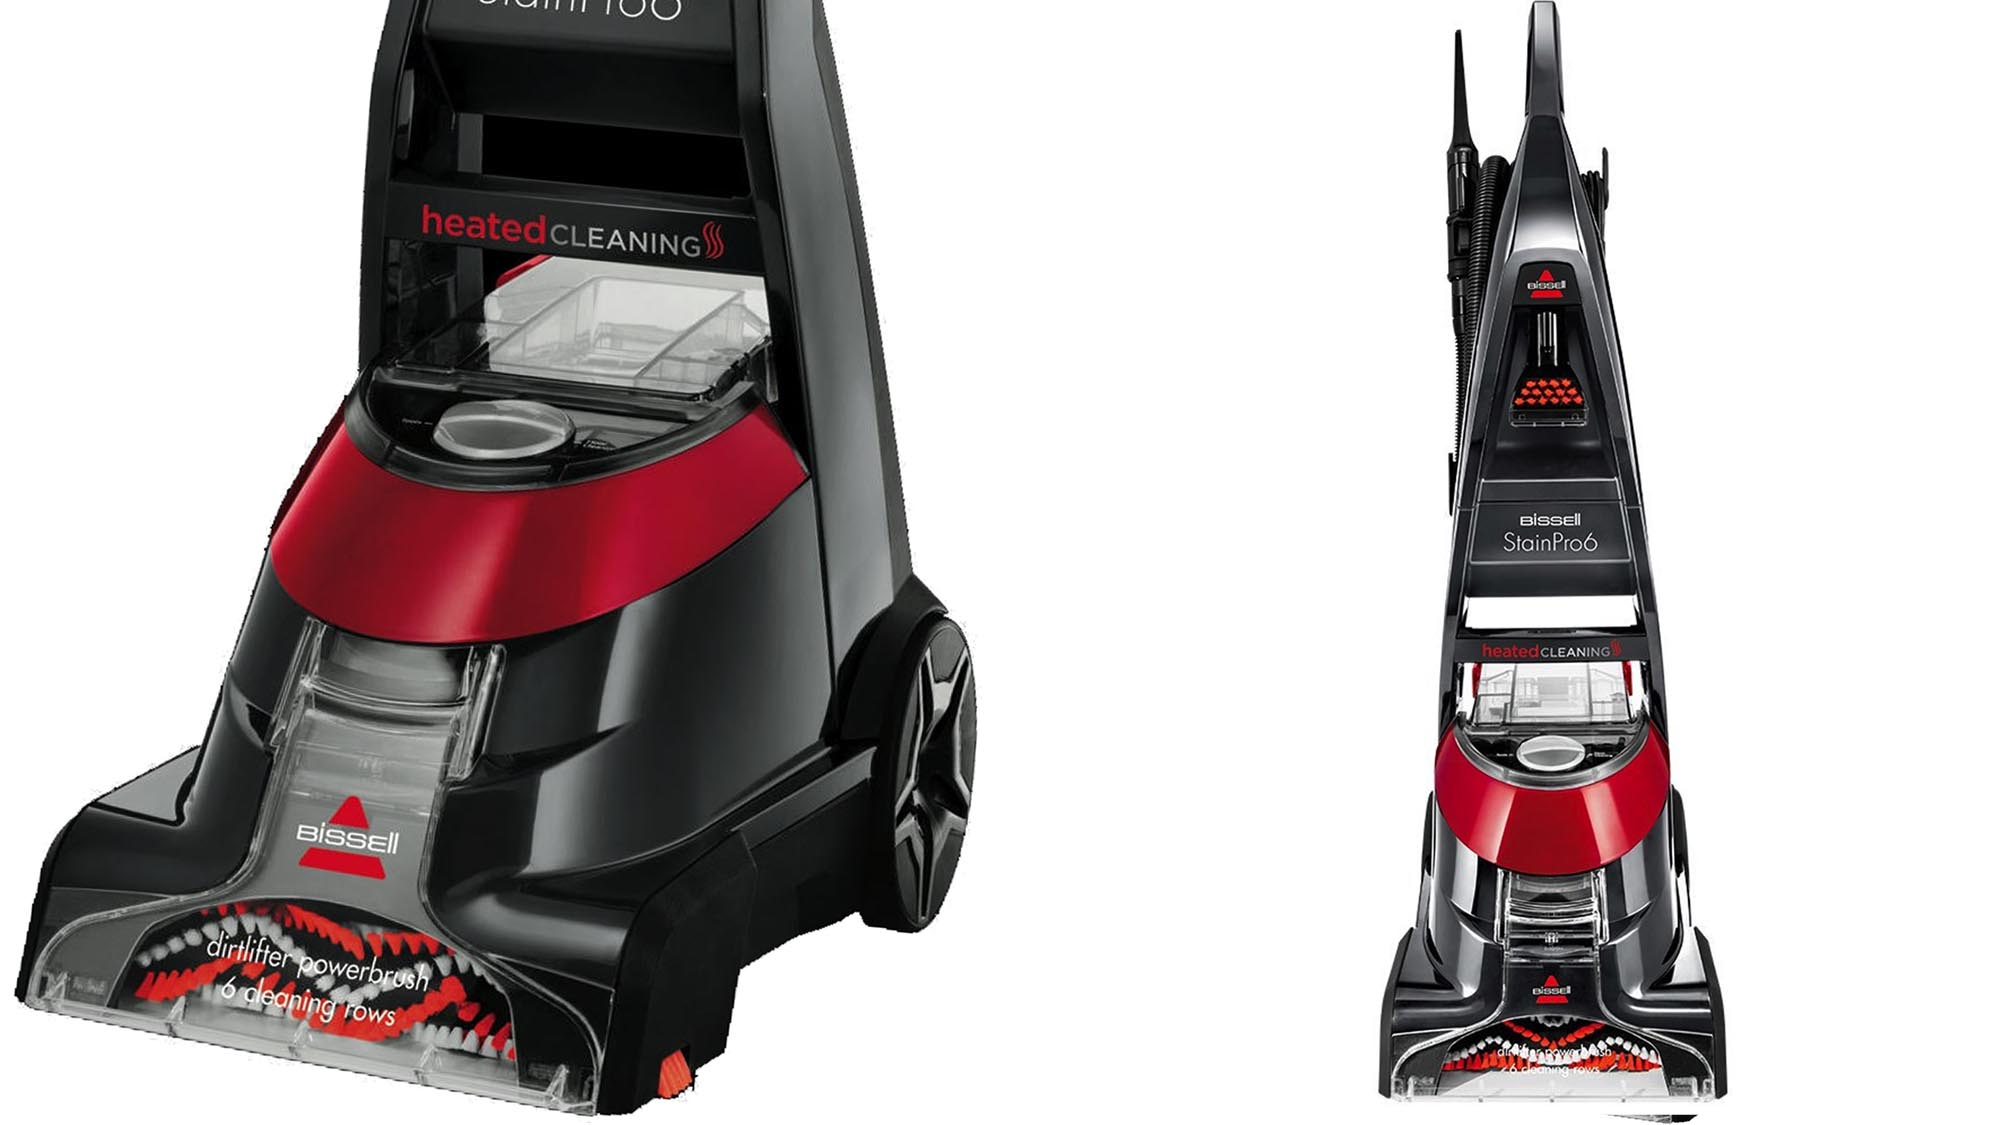 What is the best carpet to buy - The New Stainpro 6 Is Ideally Suited To Households With Two Or Three Carpeted Rooms Despite Its Cumbersome Dimensions It S An Excellent Performer And